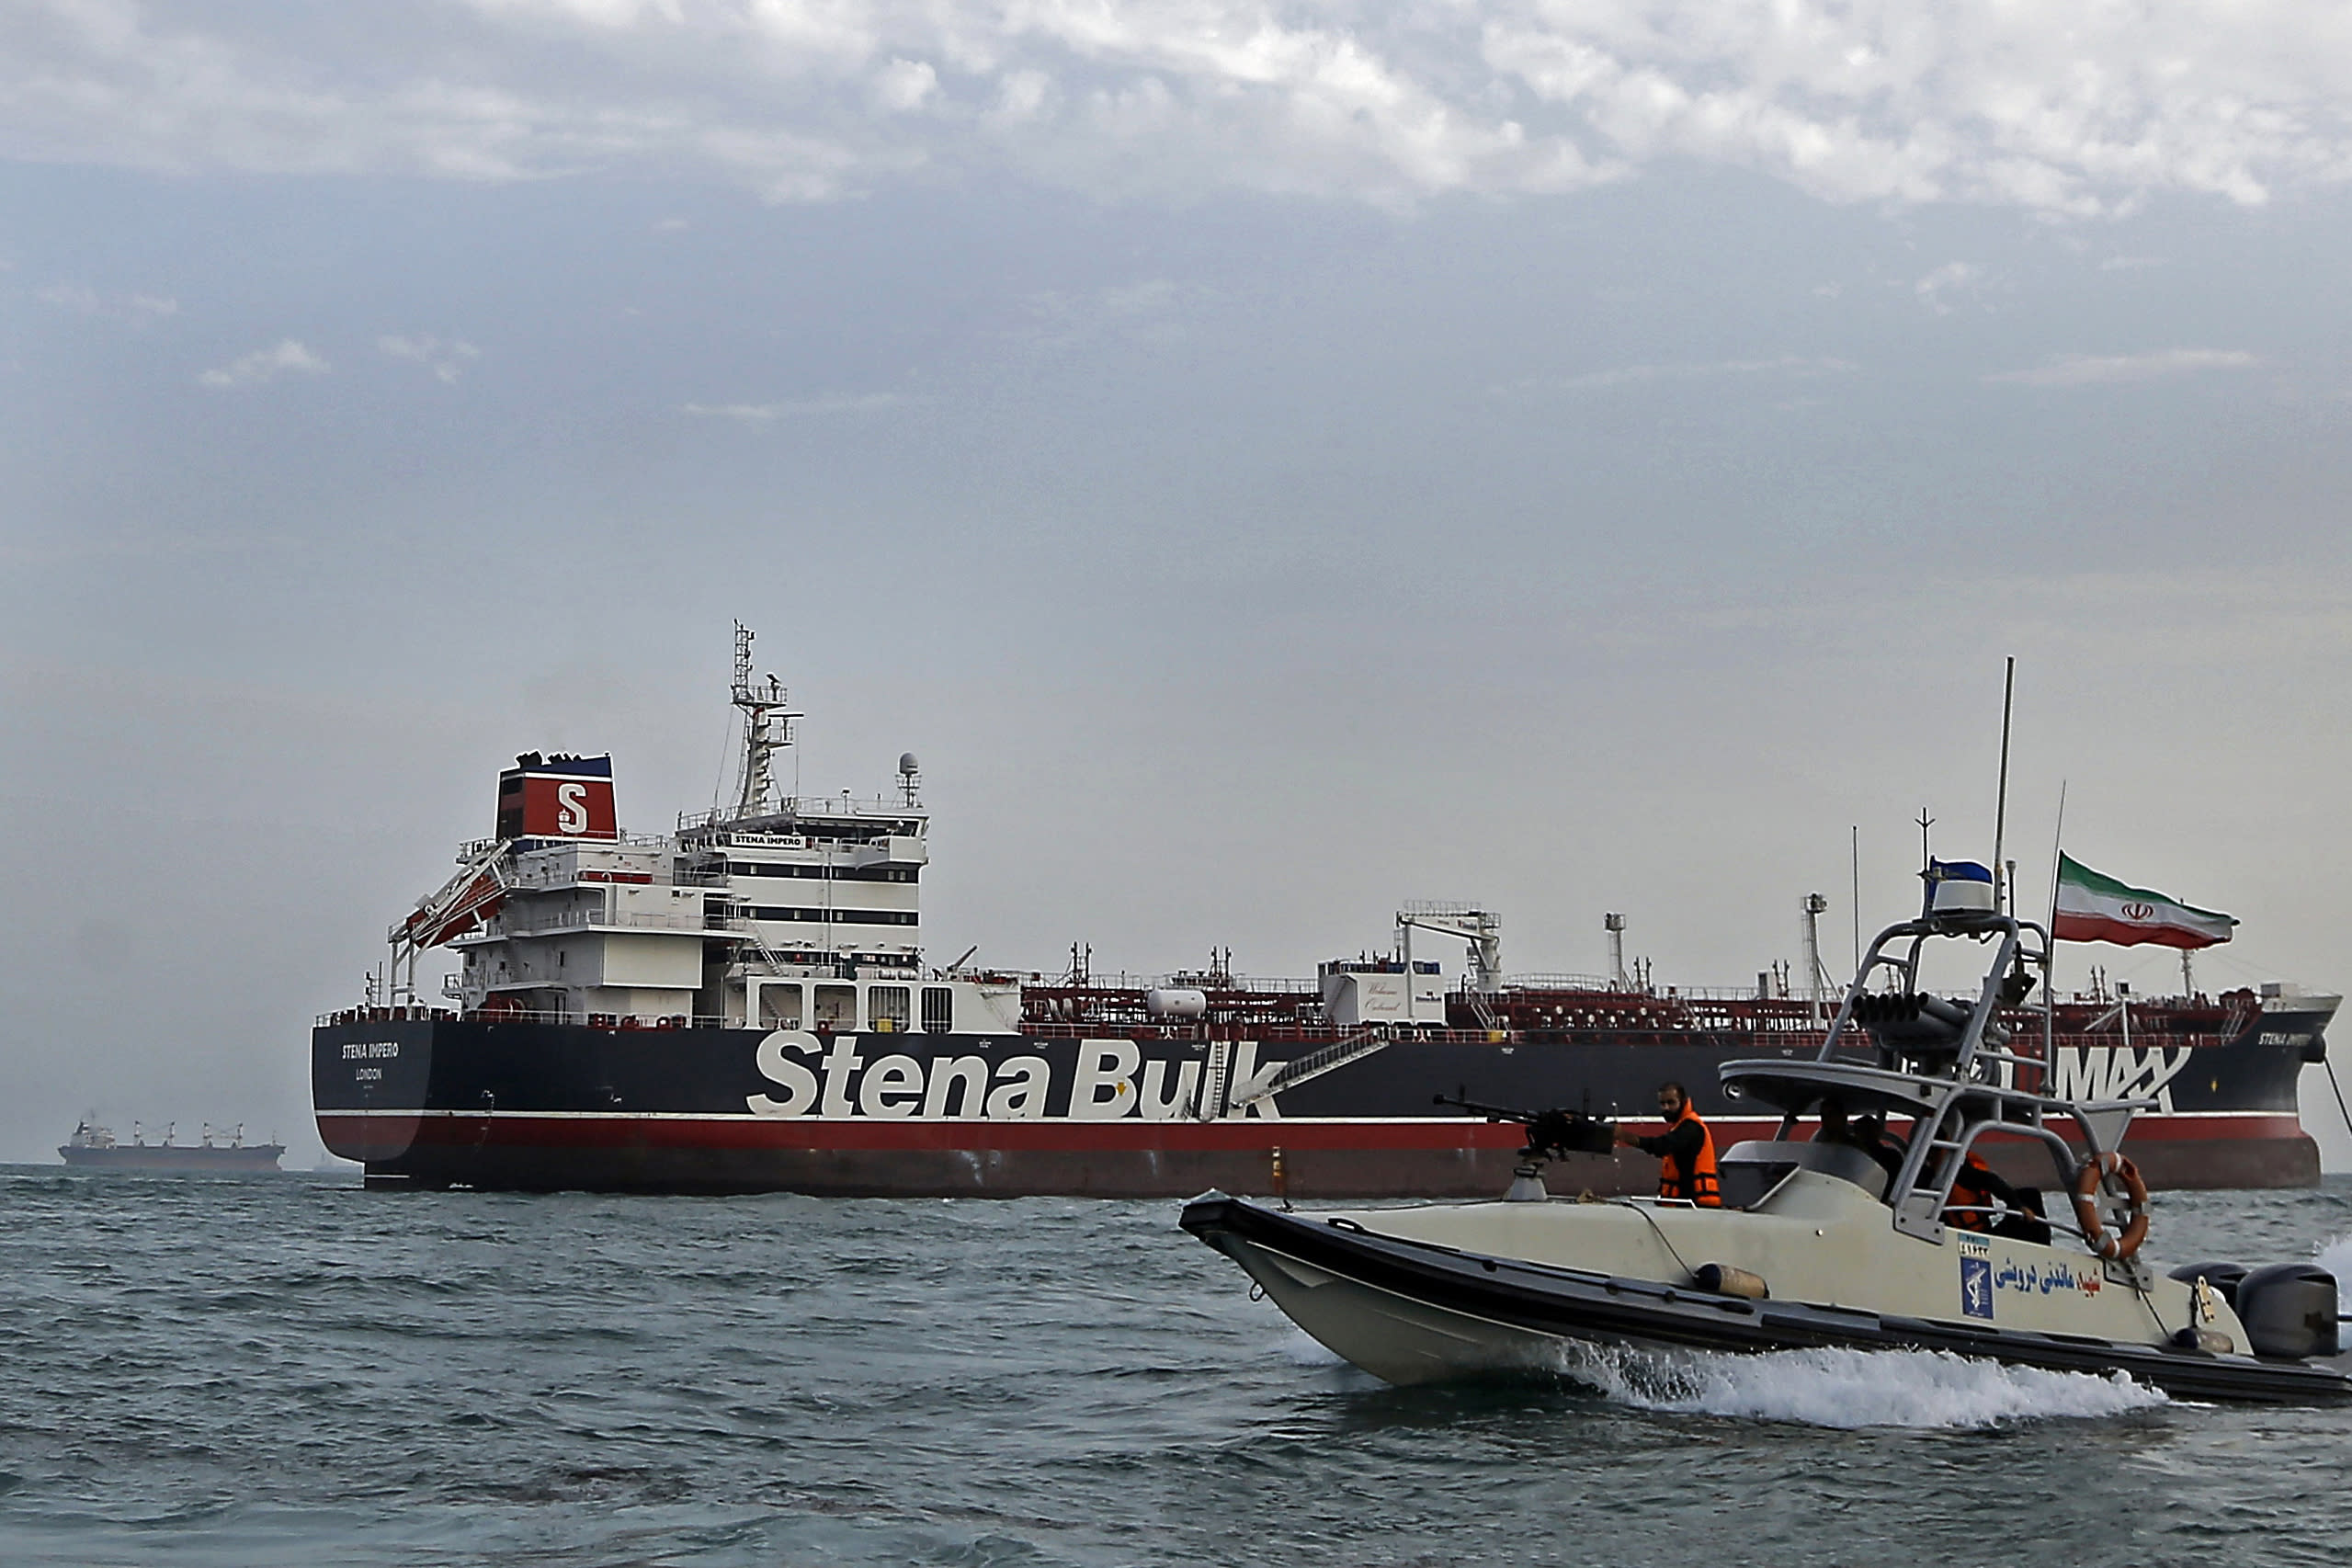 Detained British oil tanker departs Iran, owner says